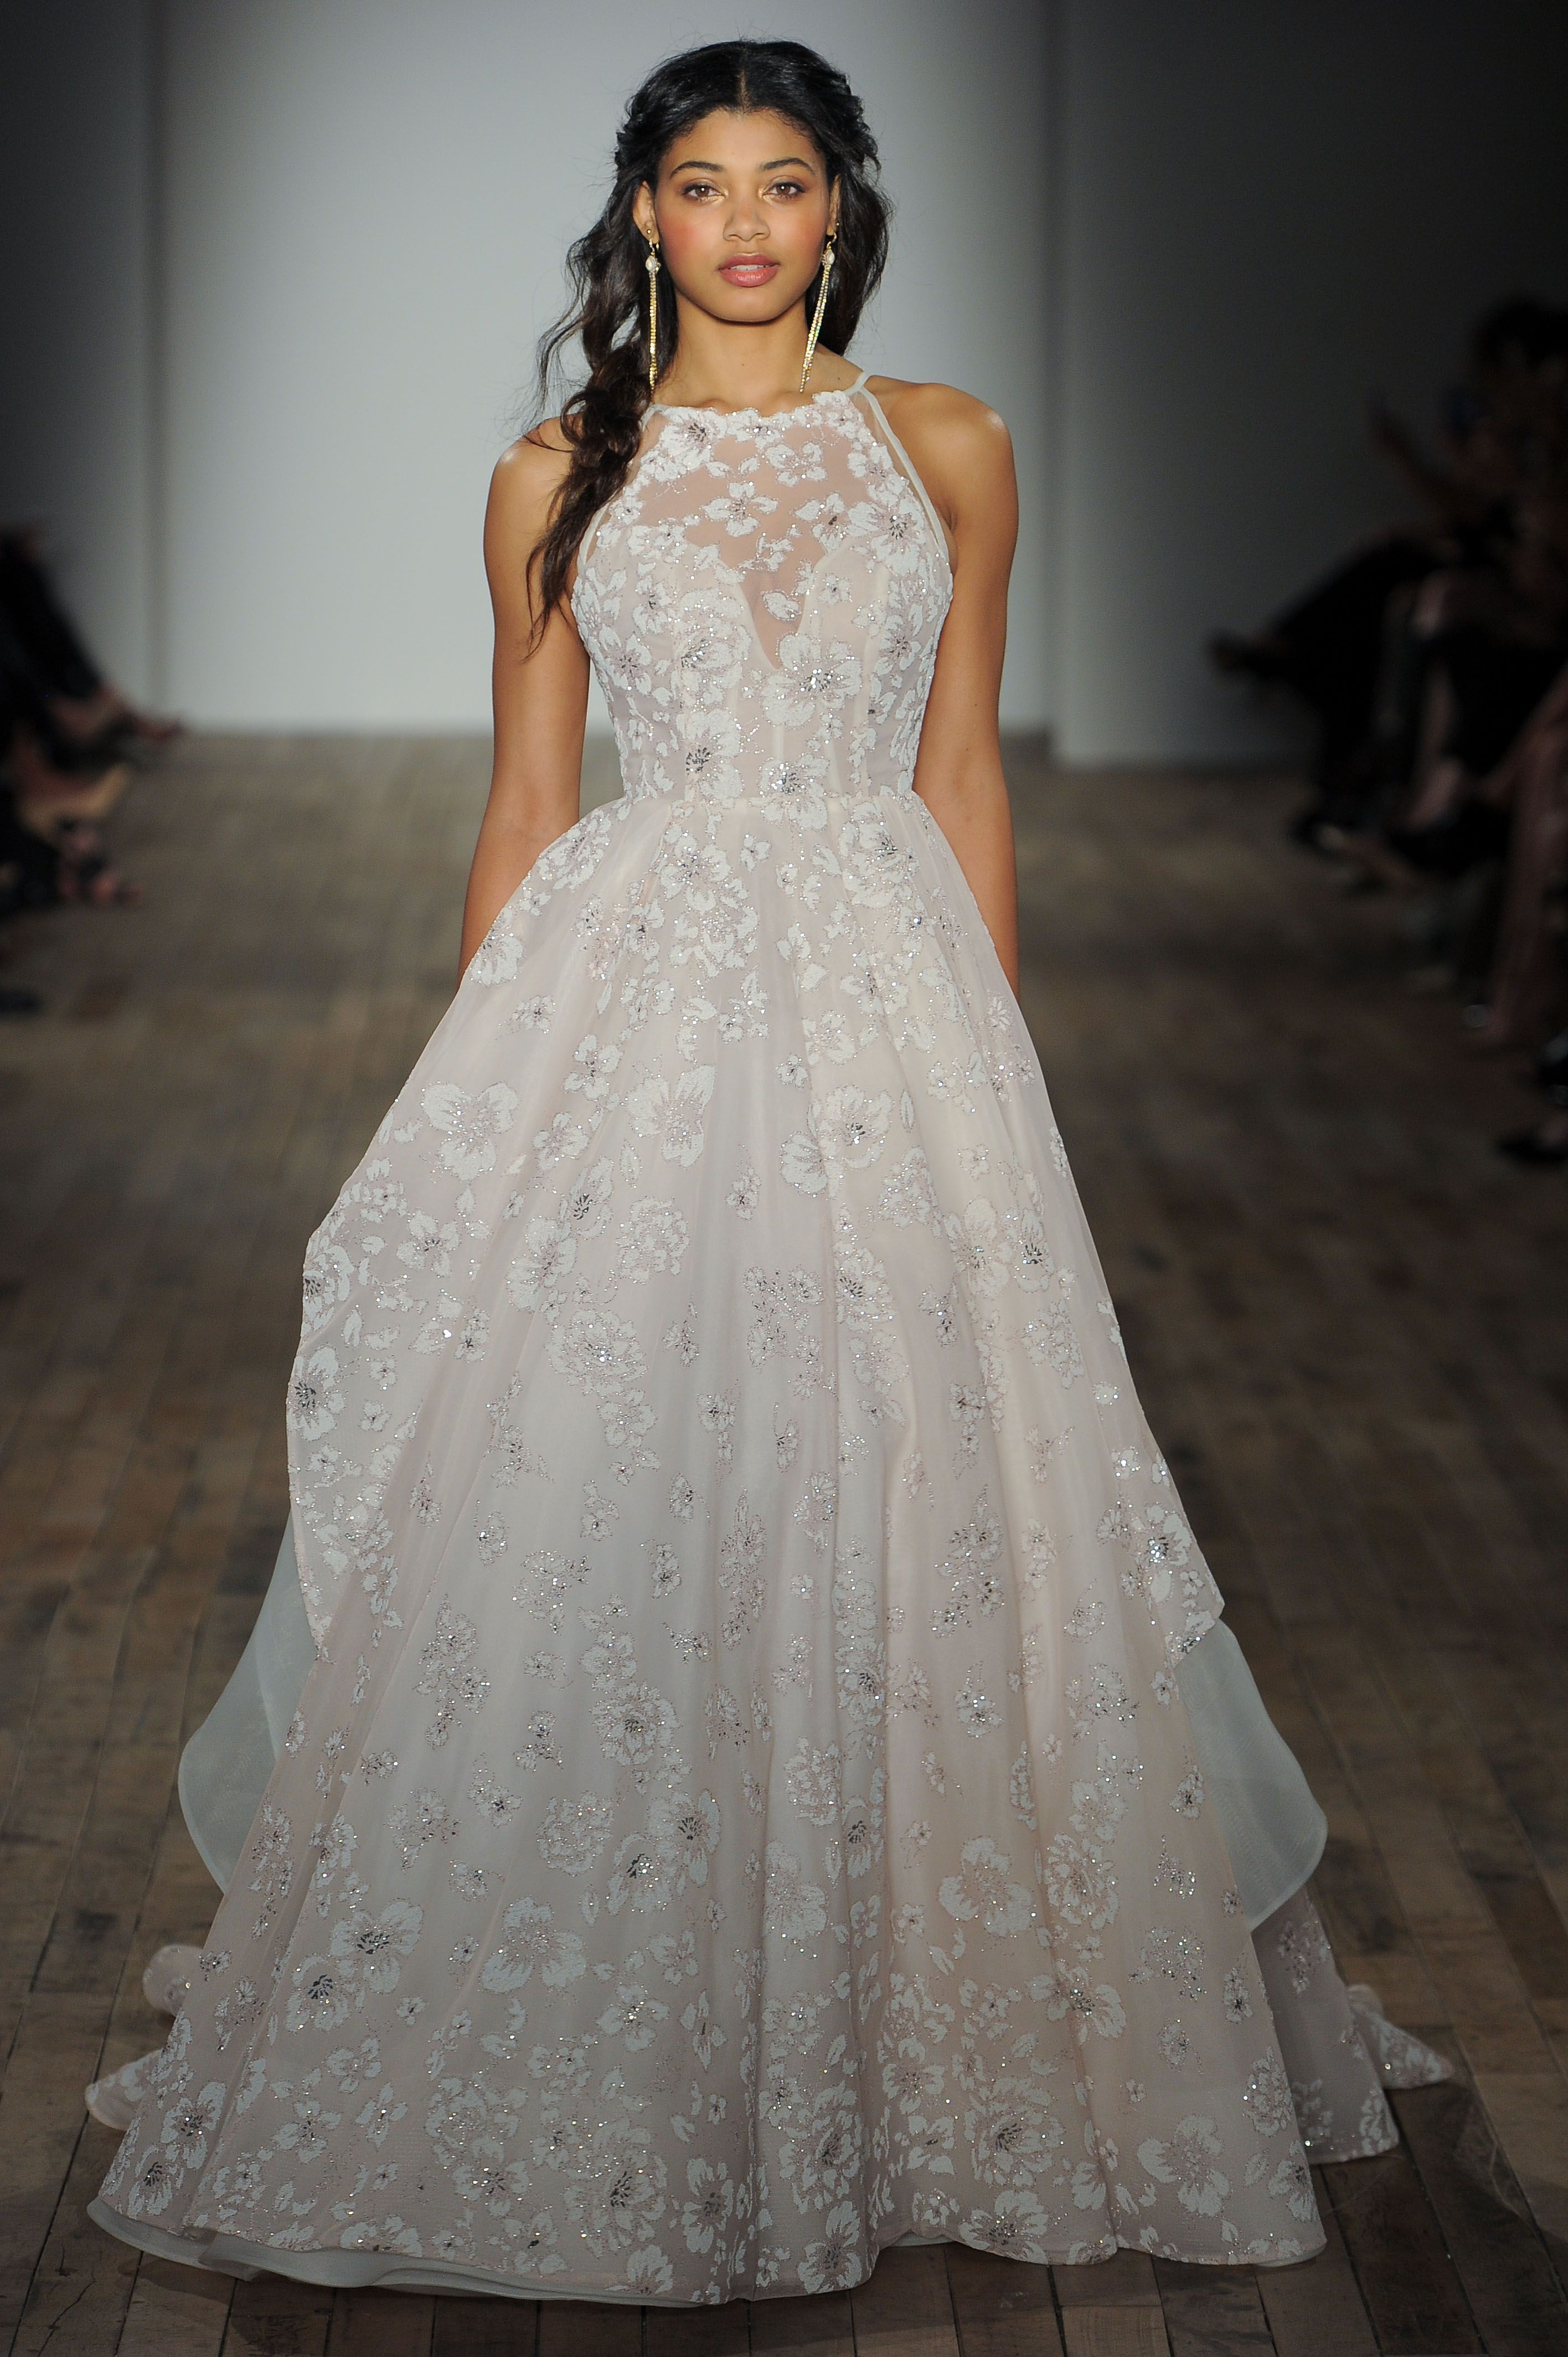 c2f446c71f759 Style 6755 Reagan Sandwashed Orchid caviar ball gown with illusion jewel  neckline and full layered floral skirt.